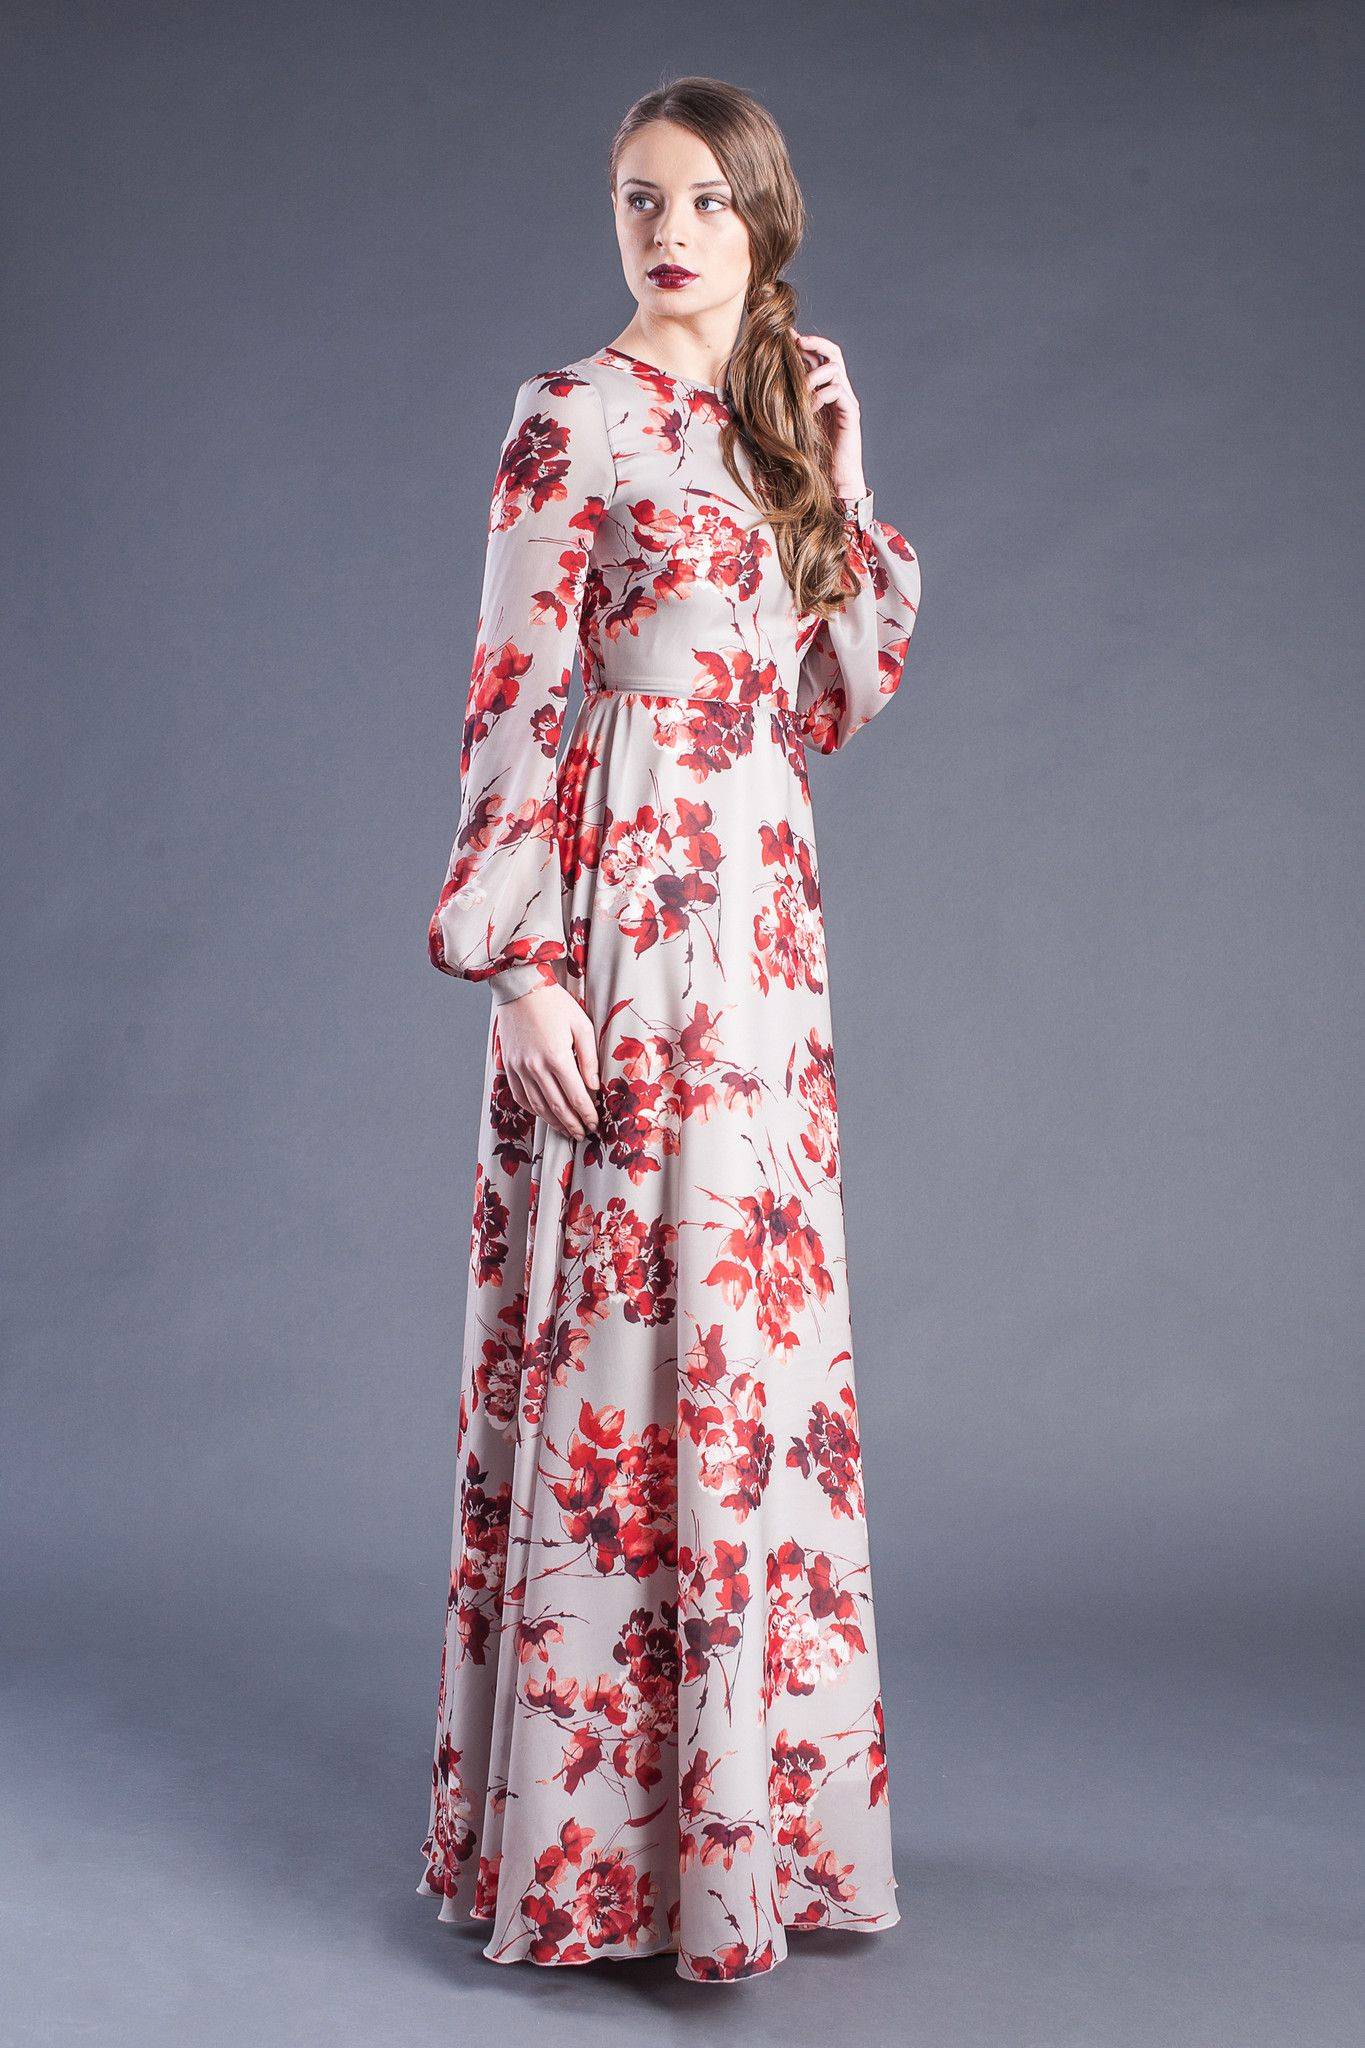 8429fb9d37889 Modest Floral Print Long Sleeve Maxi Dress - Modest floor length ...